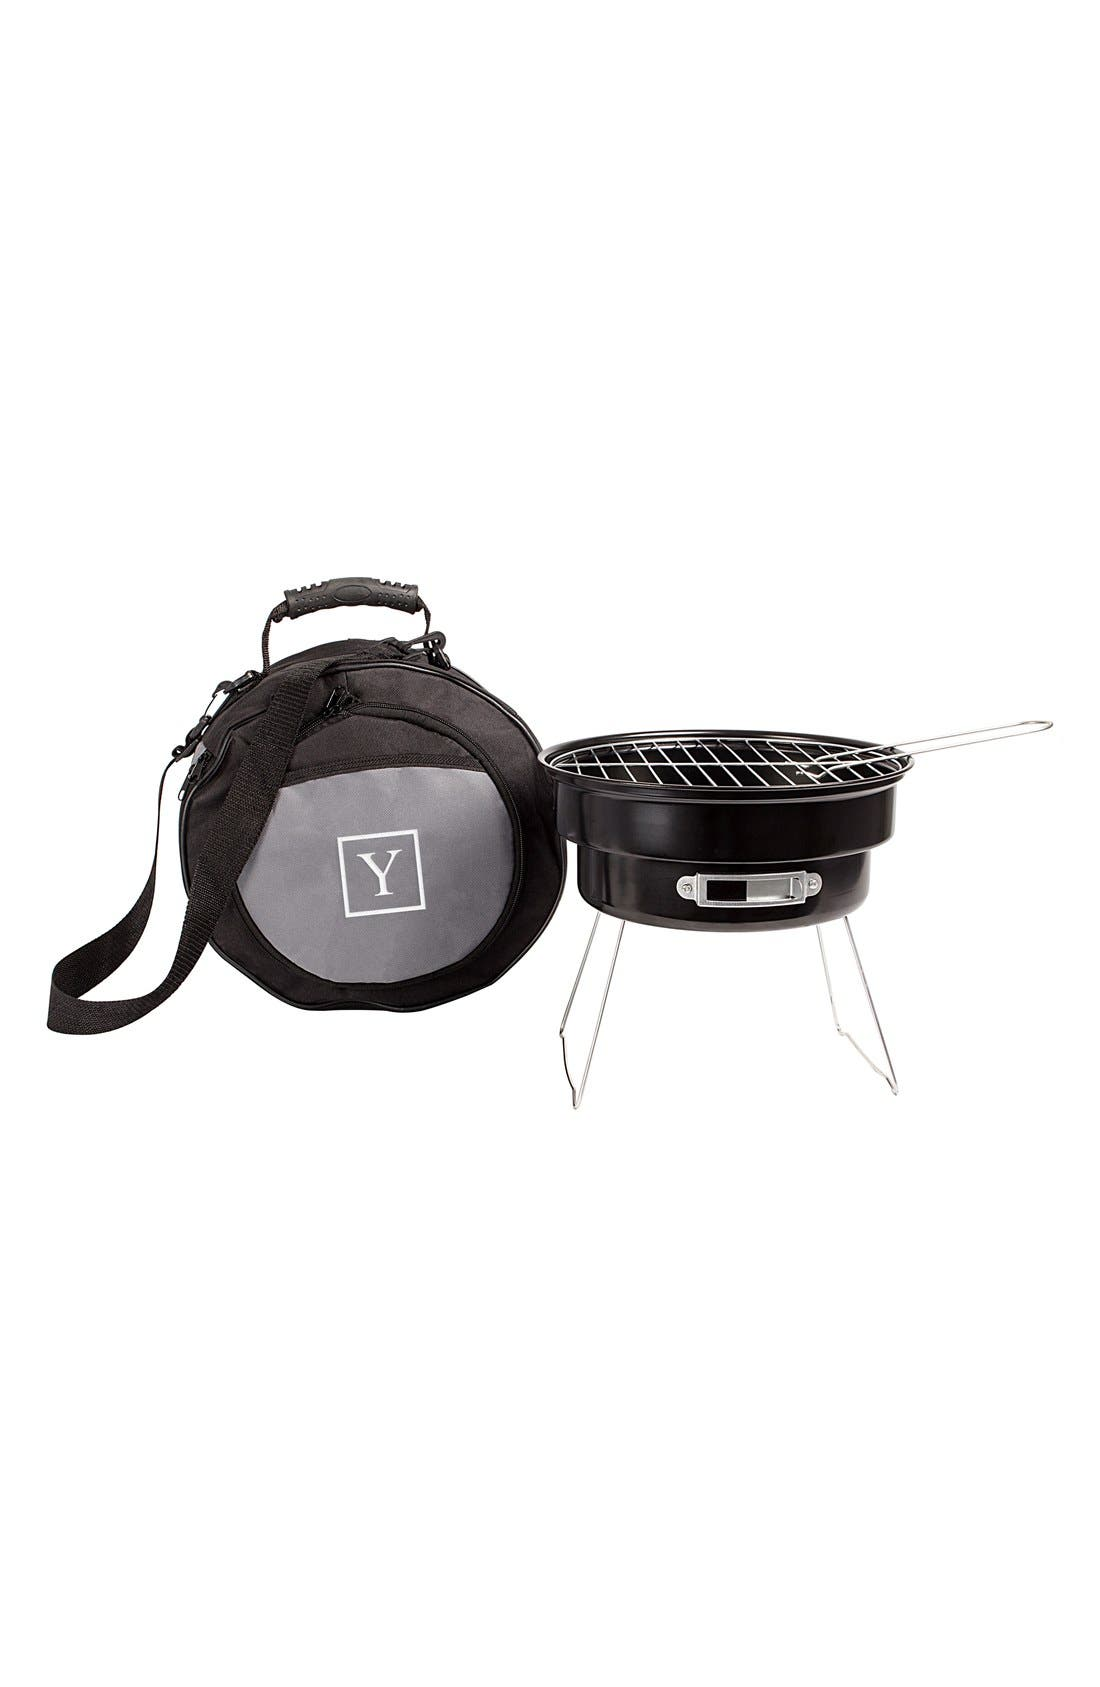 Monogram Cooler with Portable Grill,                             Main thumbnail 26, color,